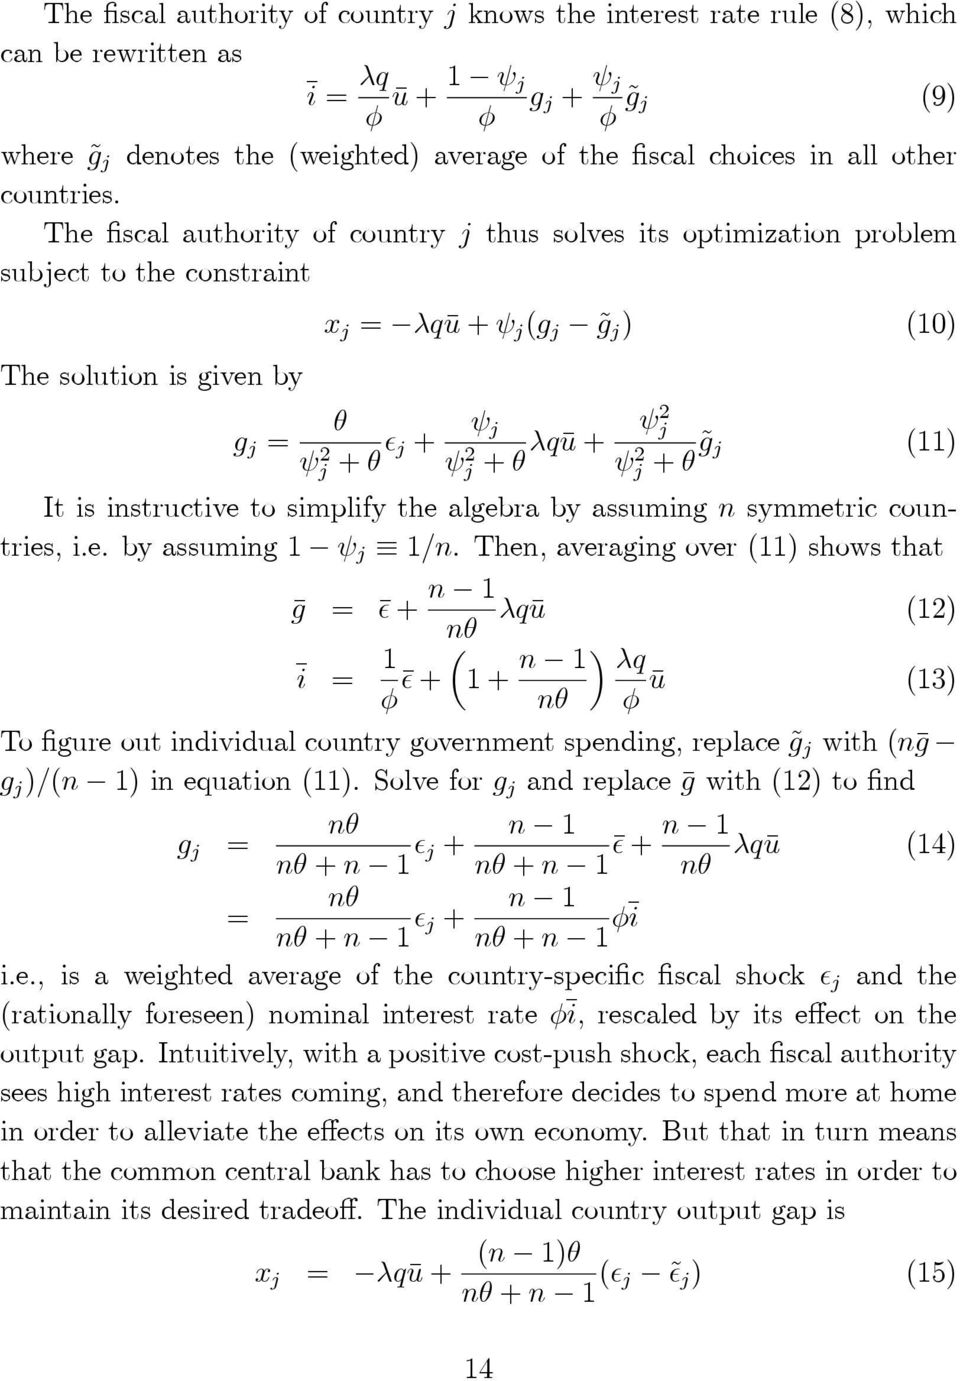 The fiscal authority of country j thus solves its optimization problem subject to the constraint The solution is given by g j = x j = λqū + ψ j (g j g j ) (10) θ ψ 2 j + θ ² j + ψ j ψ 2 j + θ λqū +